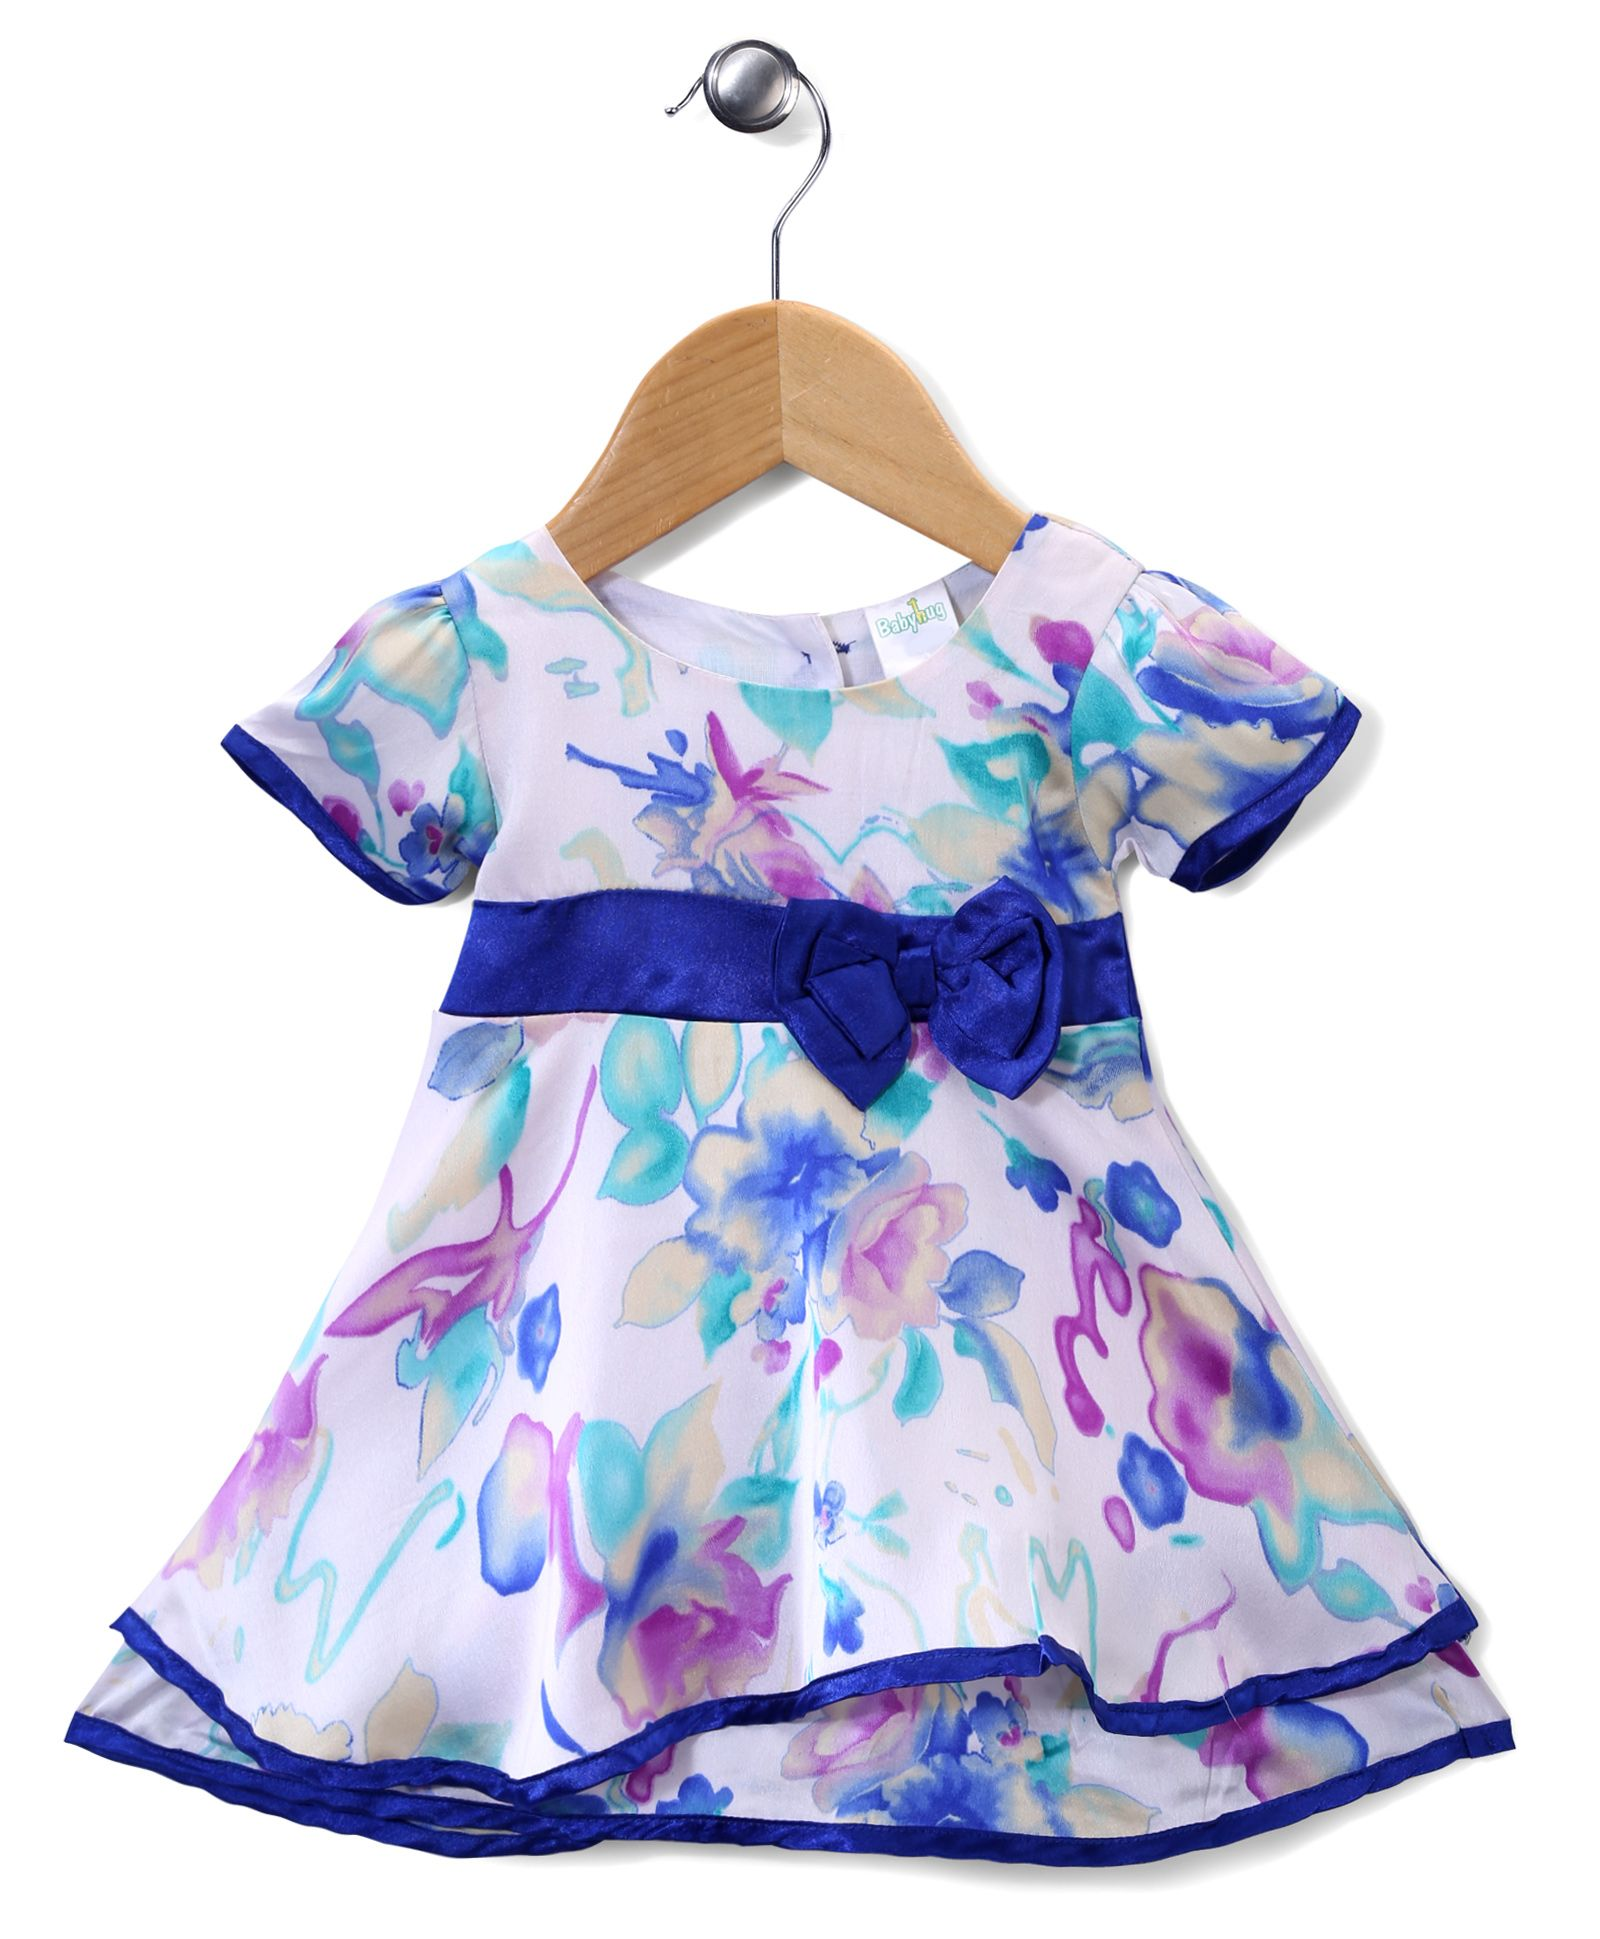 Flat 30% Off On Entire Babyhug Fashion Range By Firstcry | Babyhug Short Sleeves Party Frock Floral Design - White And Blue @ Rs.551